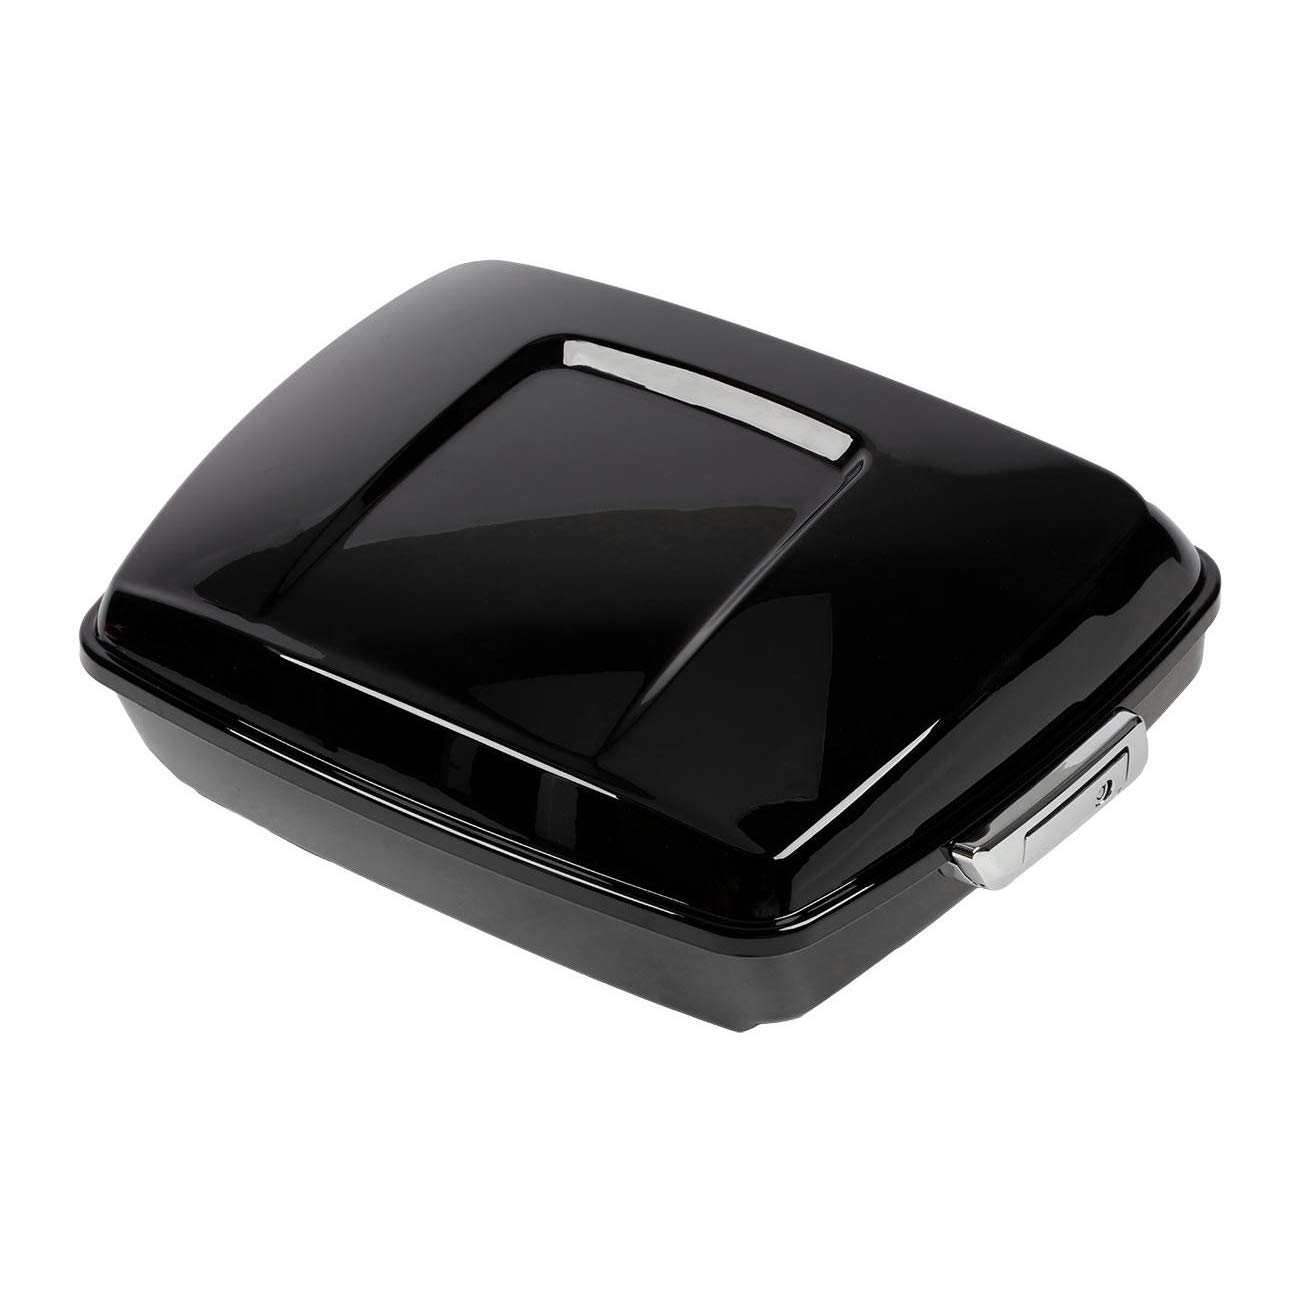 INNOGLOW Motorcyle Trunk Motorcycle Tail Box with 2 Keys Motorcycle Pack Trunk Fits for Harley Davidson Touring 2014-2019